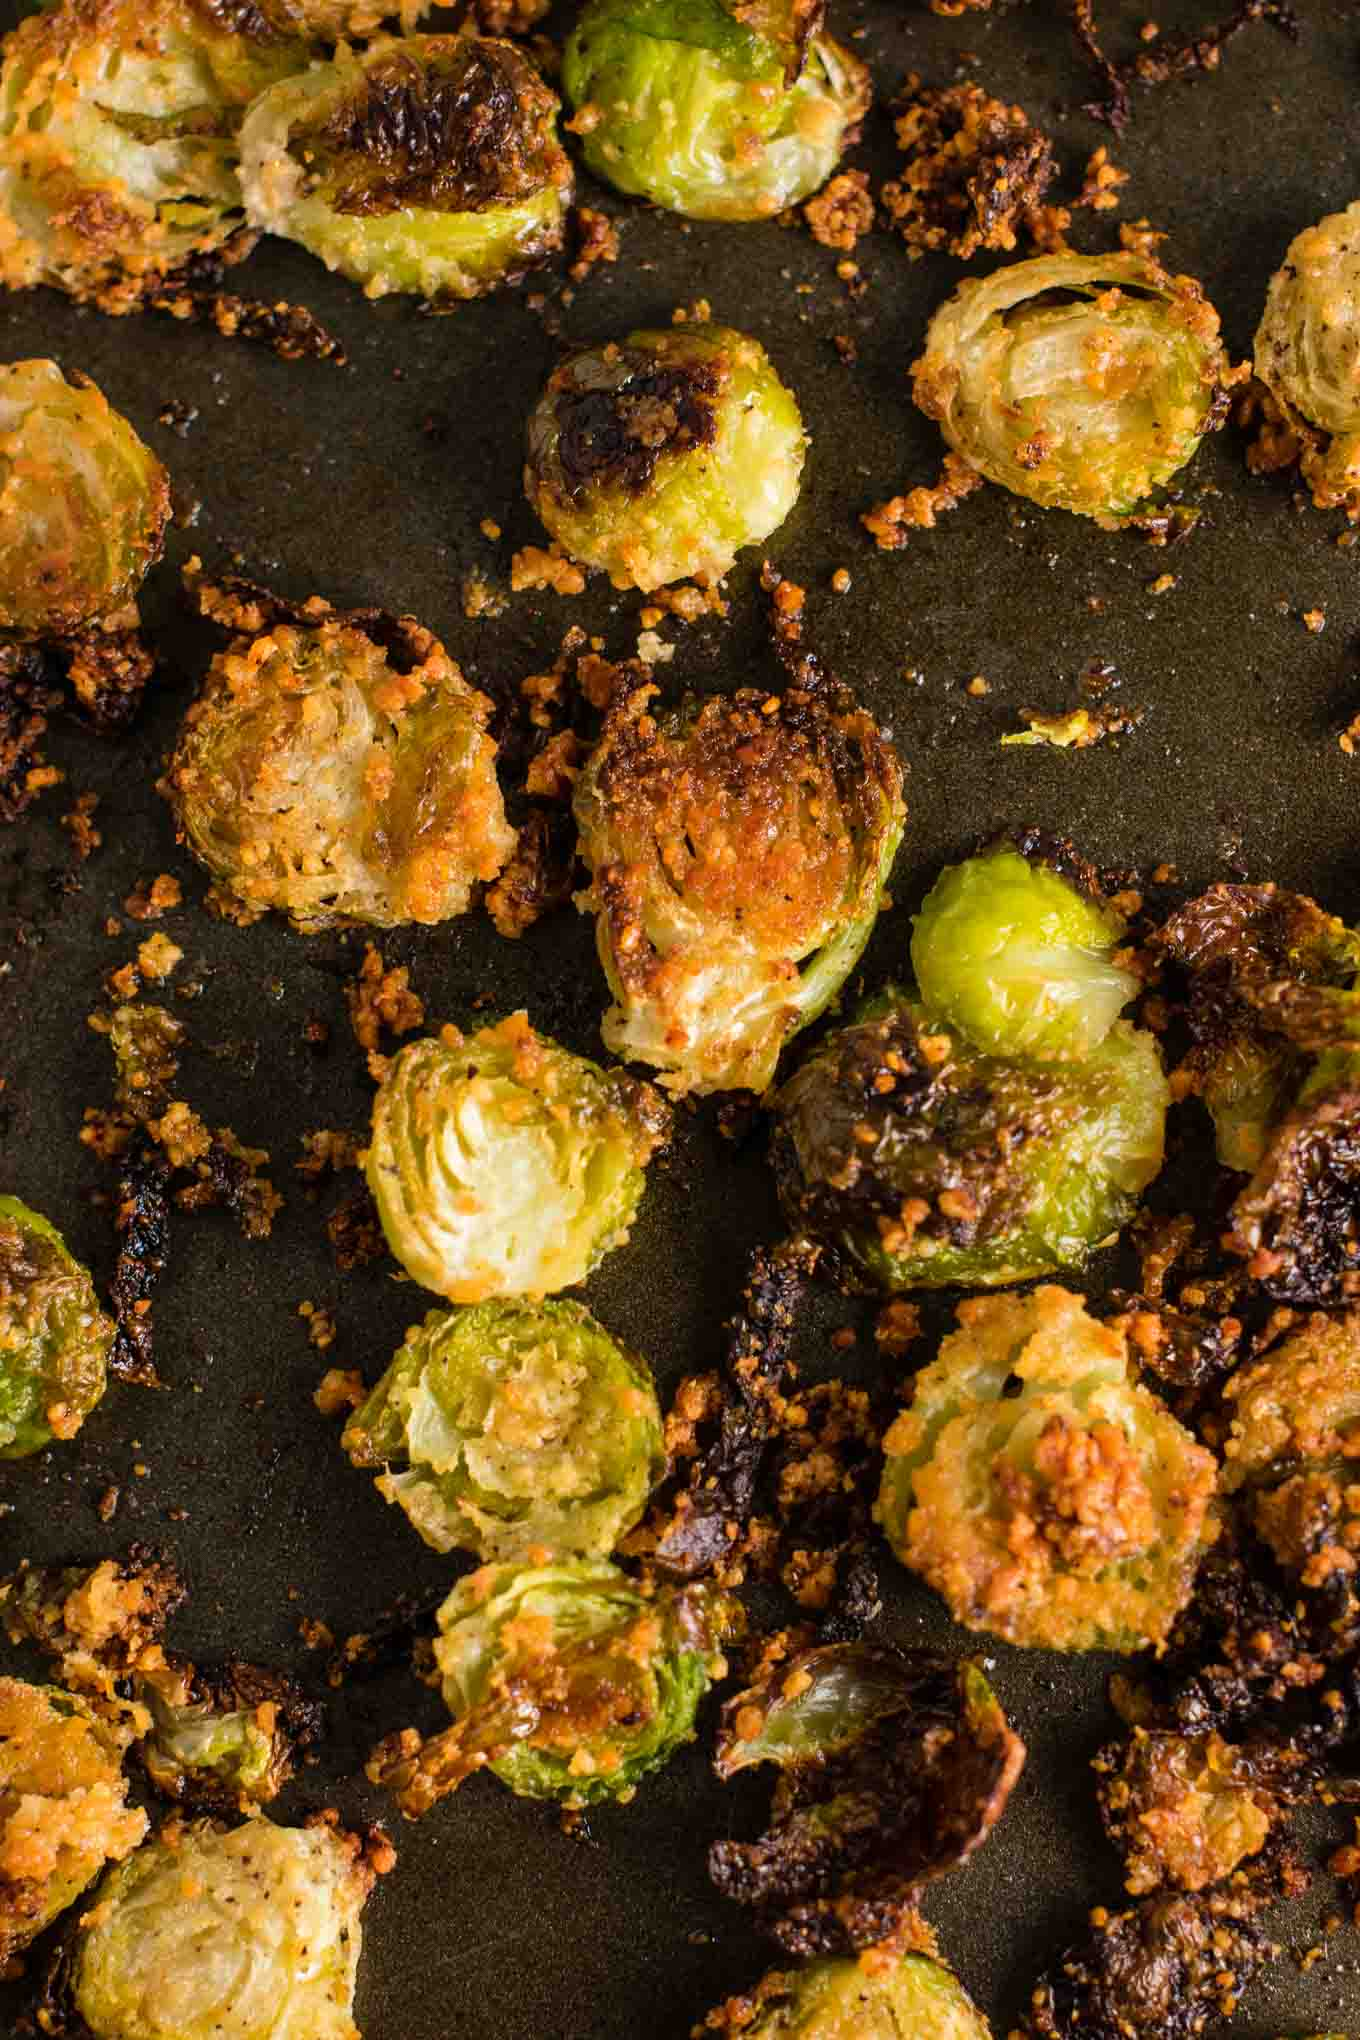 roasted brussel sprouts these are so good I could eat the whole pan myself! #brusselsprouts #brusselsproutchips #dinner #sidedish #vegetarian